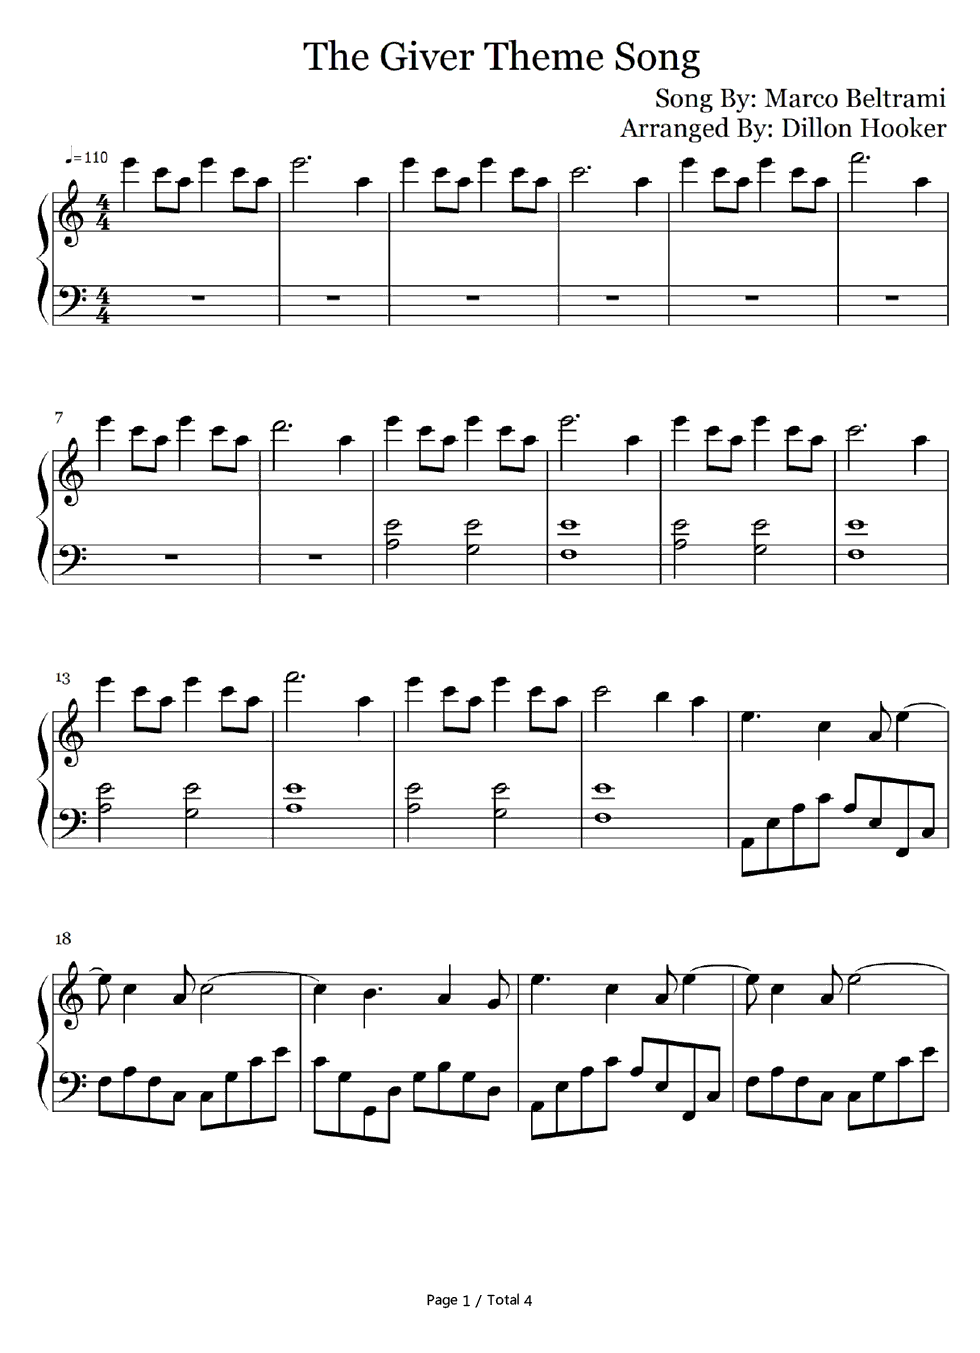 free rosemary s song the giver theme sheet music preview 1 sheet